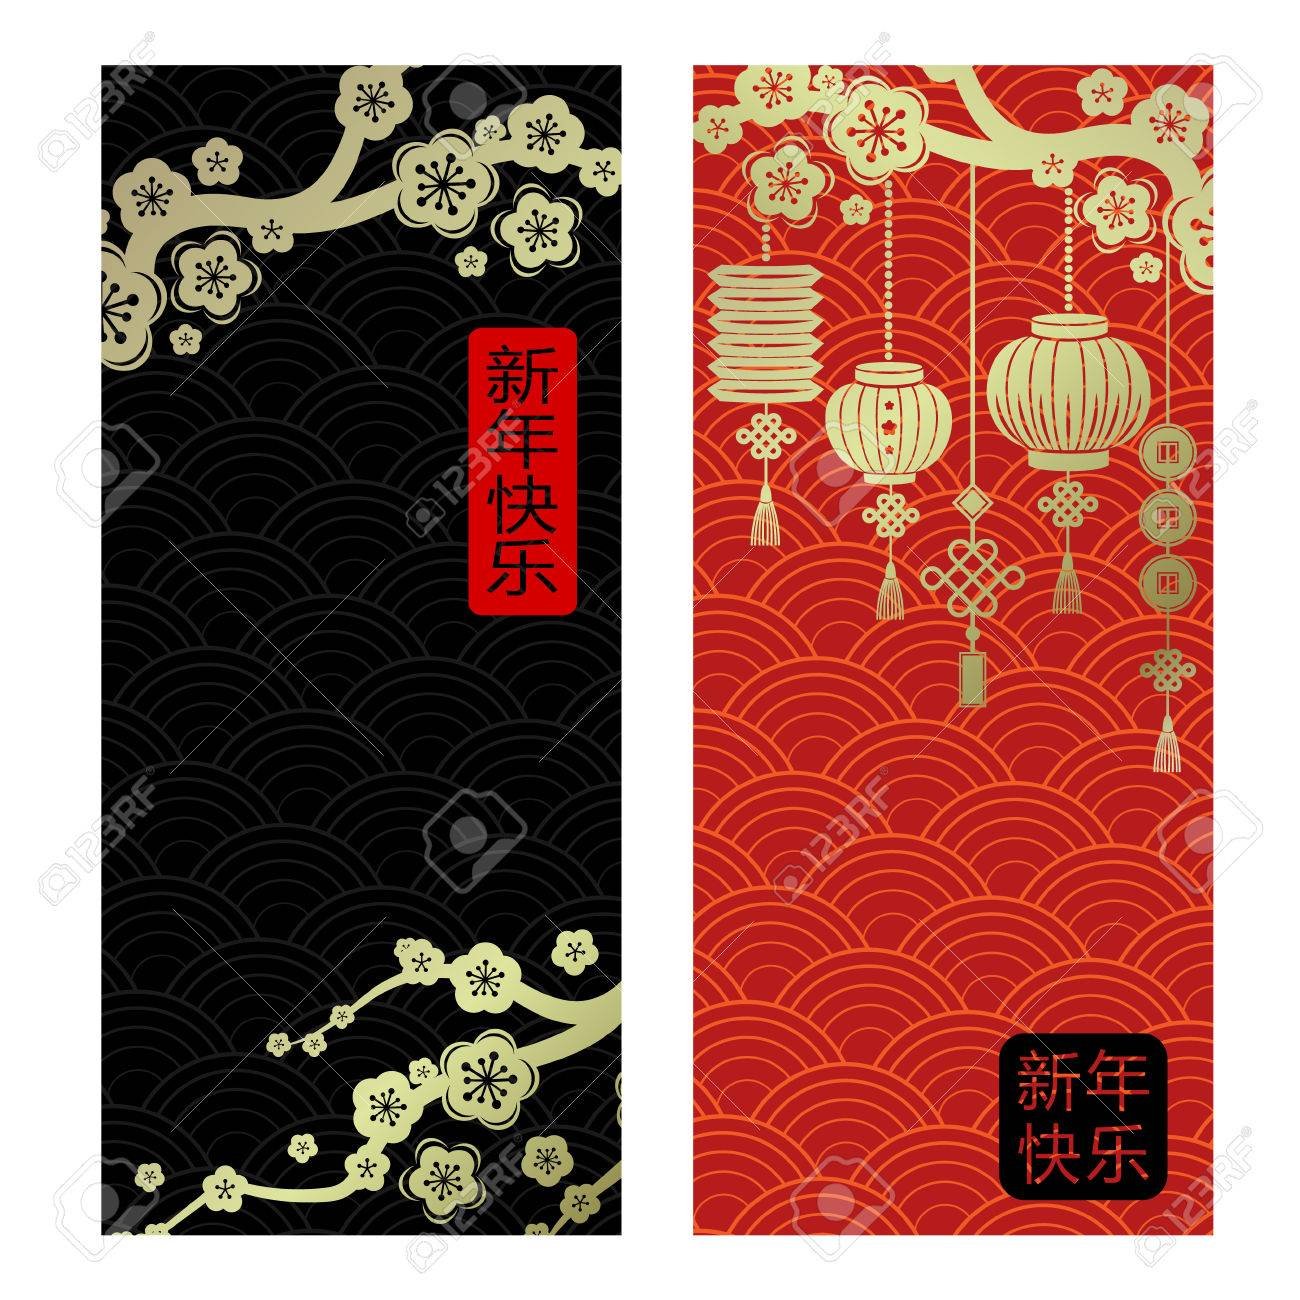 Chinese New Year vertical red and black banners with golden cherry blossom branches and lanterns Chinese characters: happy new year - 84120004